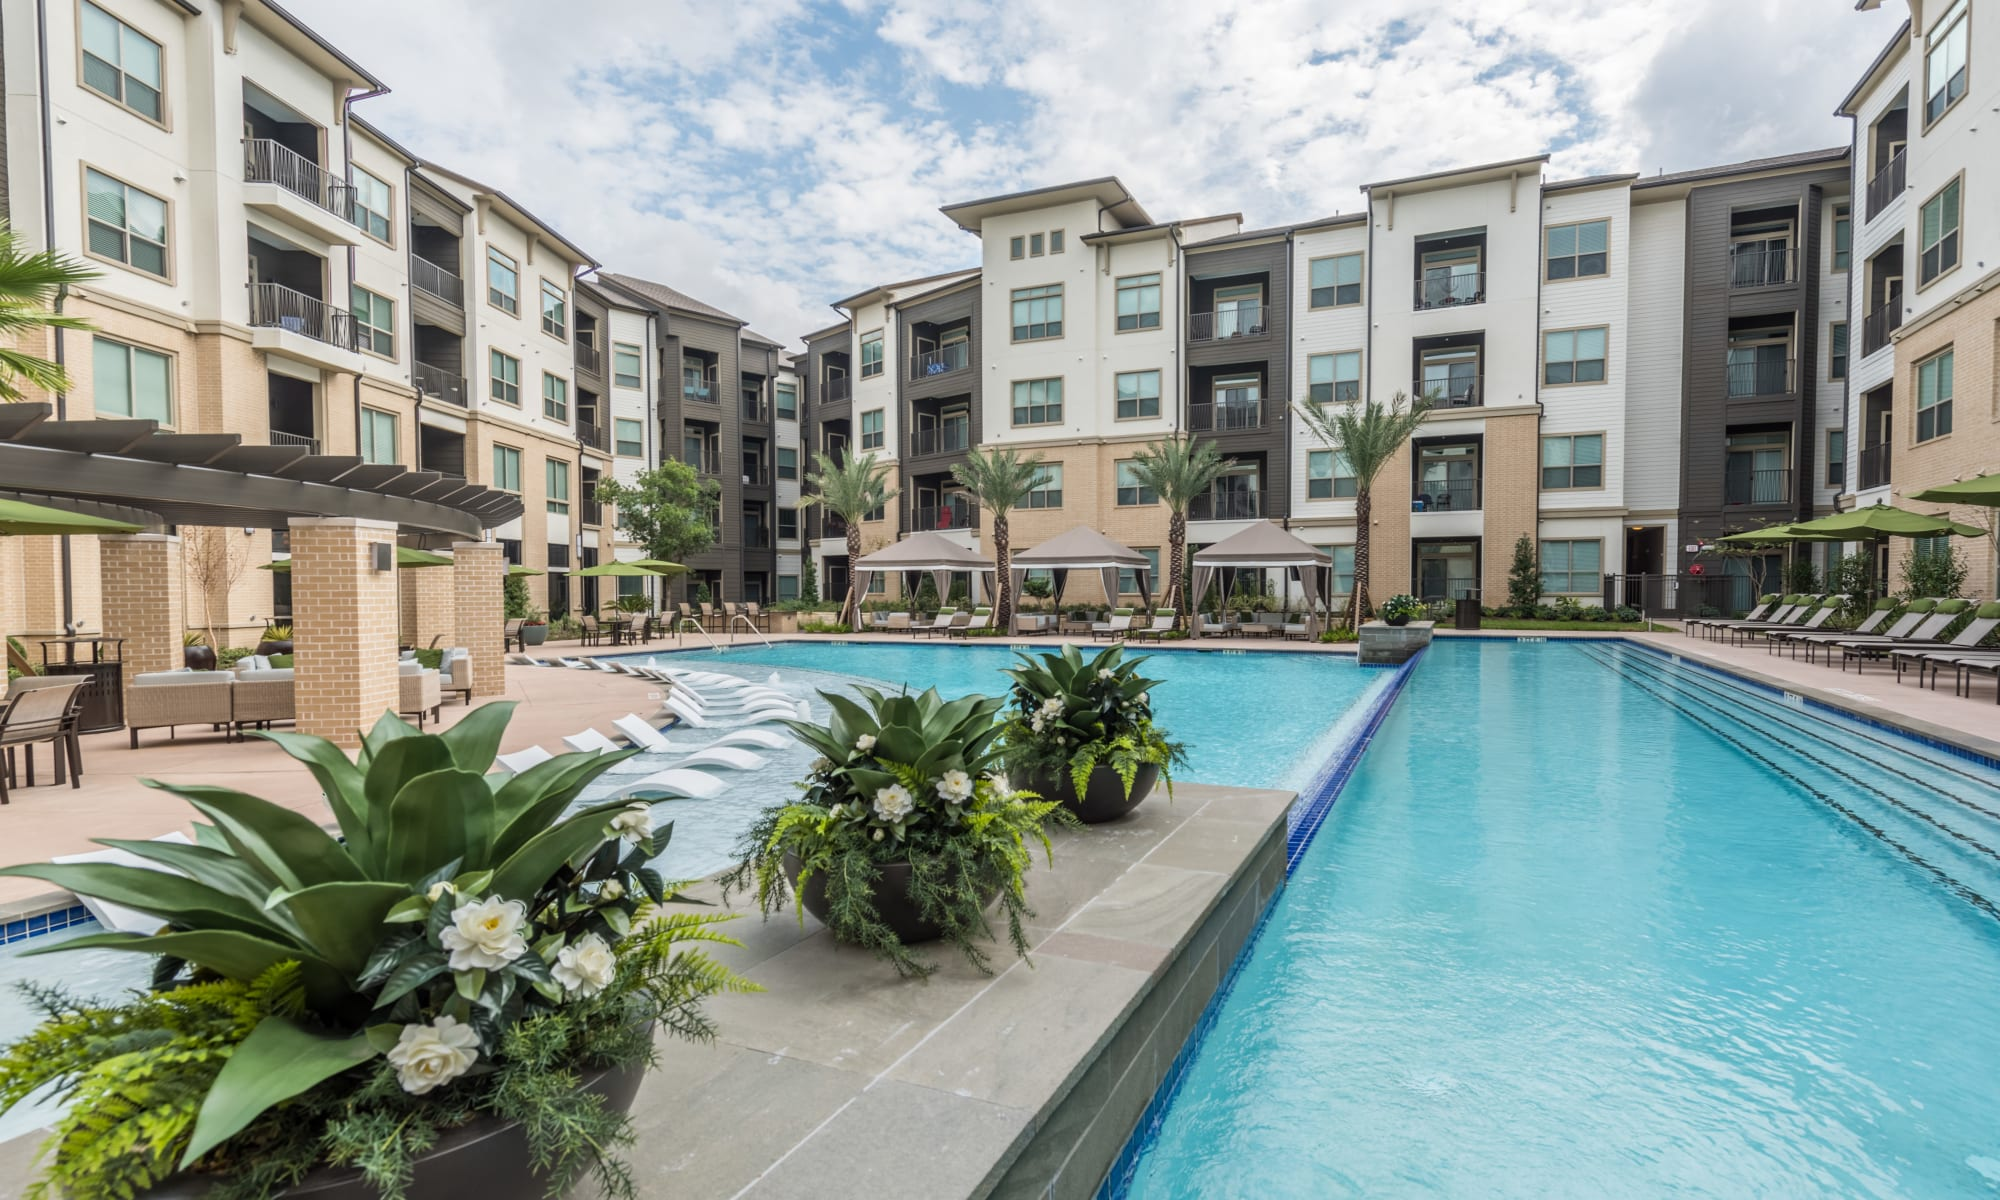 Apartments at The Abbey at Northpoint in Spring, Texas